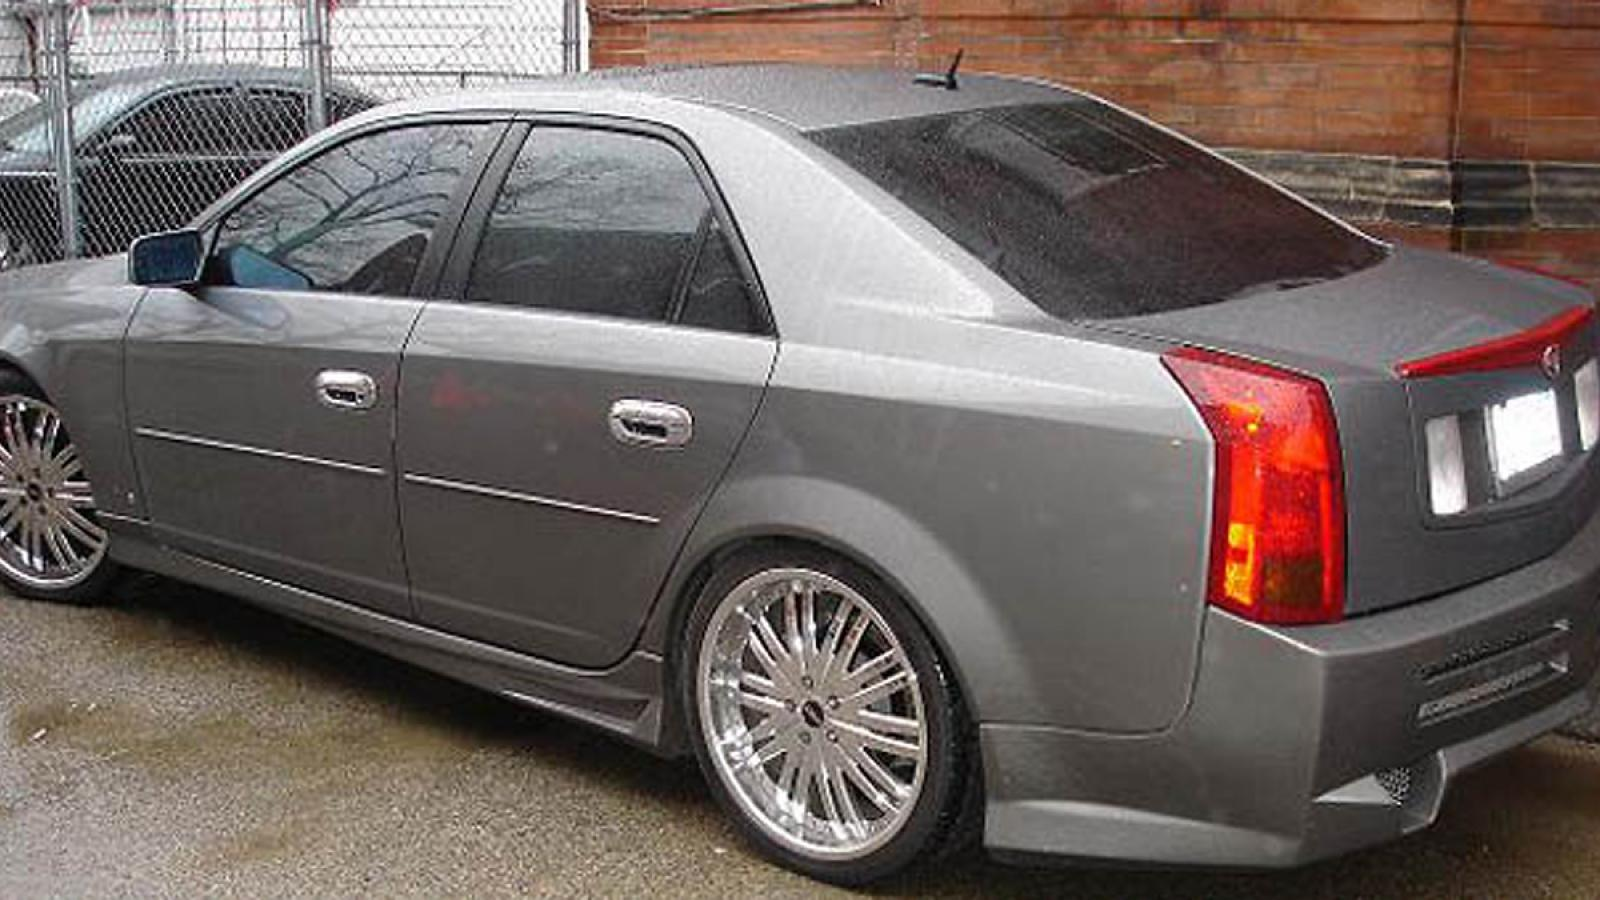 hight resolution of 800 1024 1280 1600 origin 2007 cadillac cts